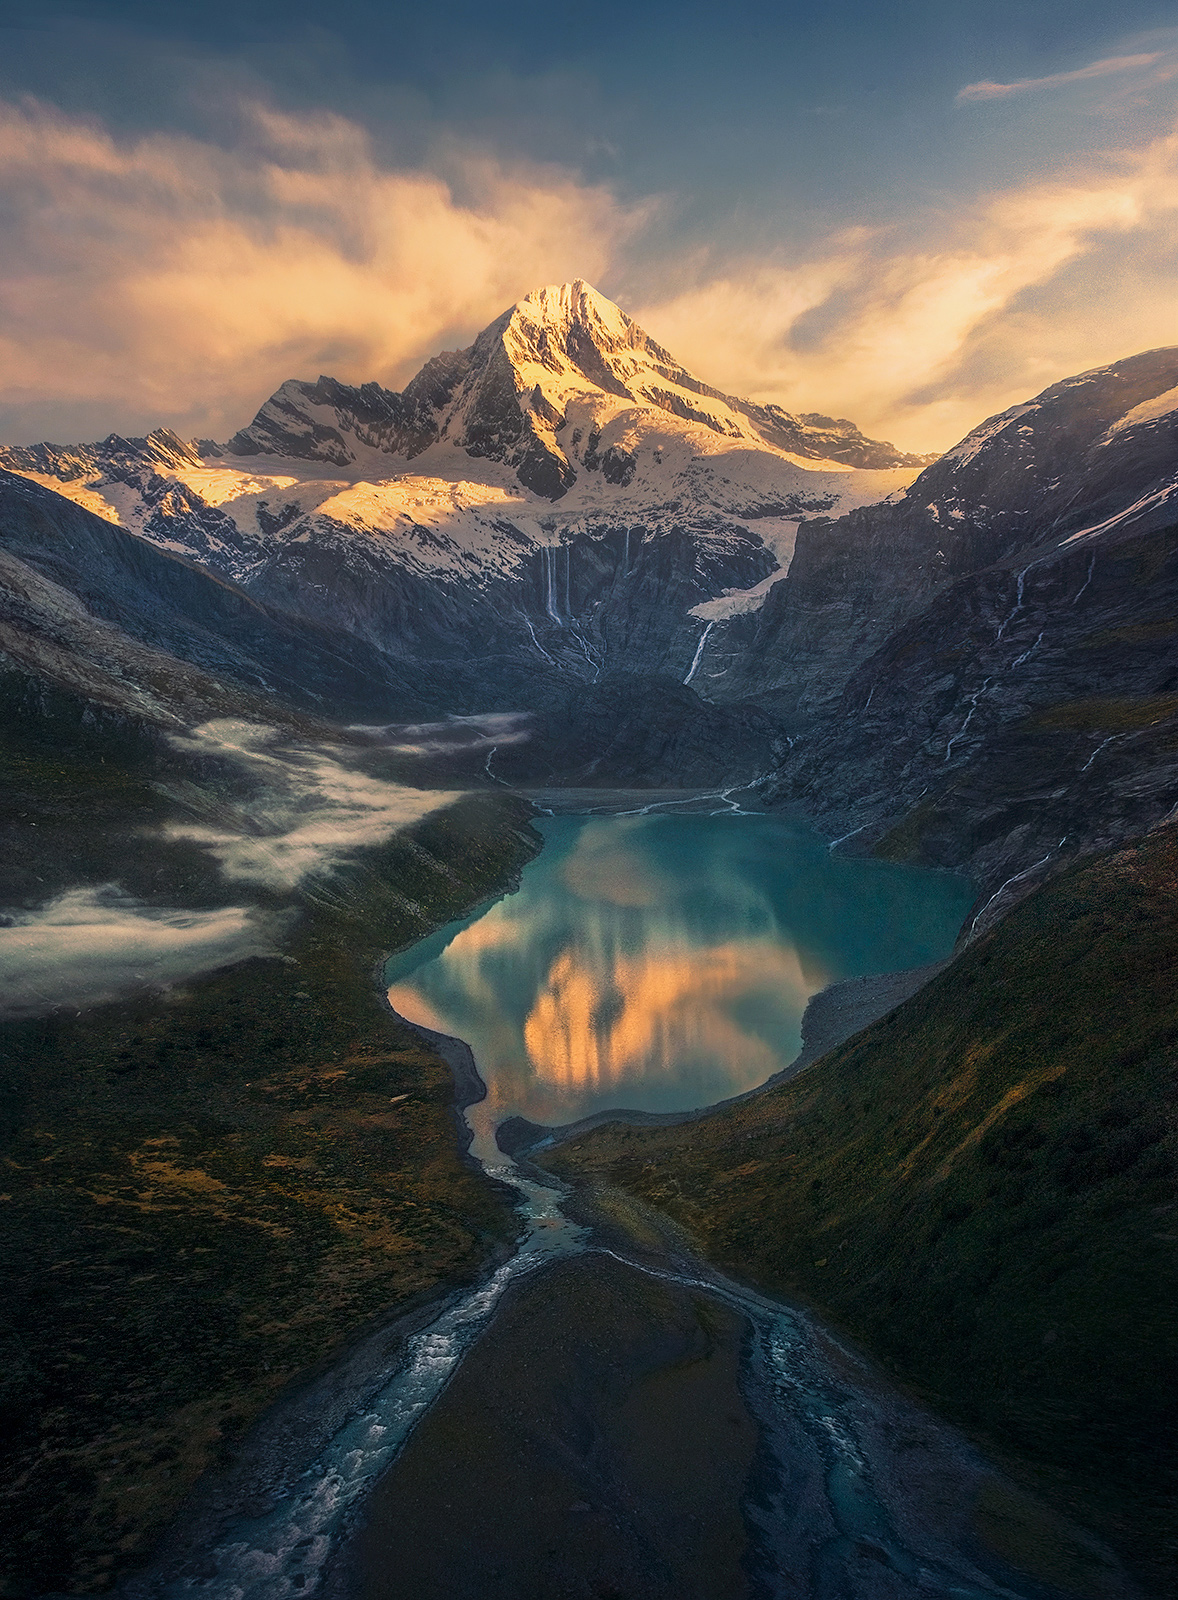 There aren't many views like this on Earth, but it's New Zealand so......